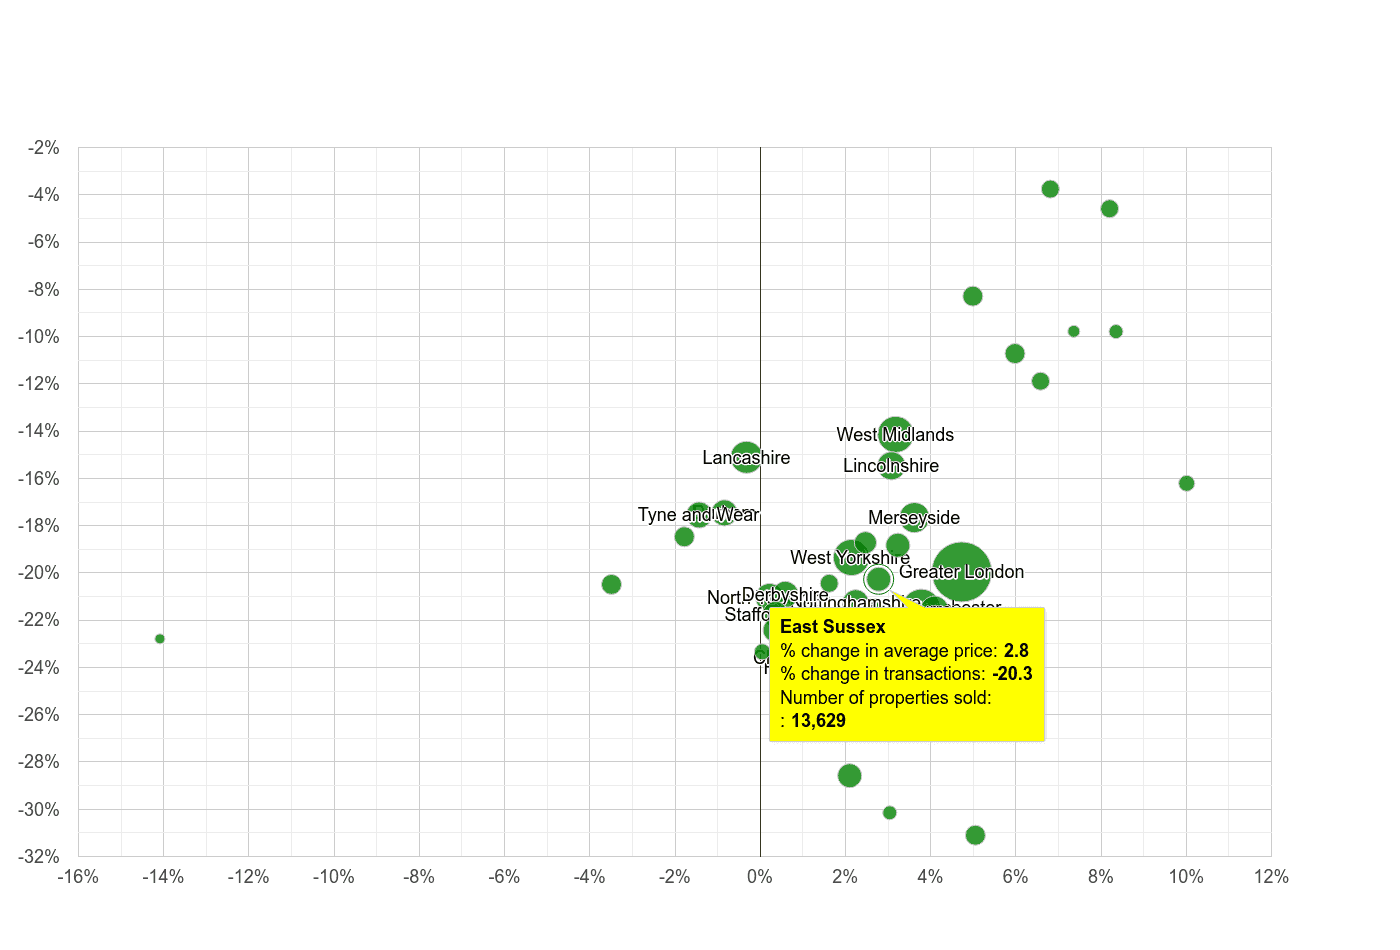 East Sussex property price and sales volume change relative to other counties